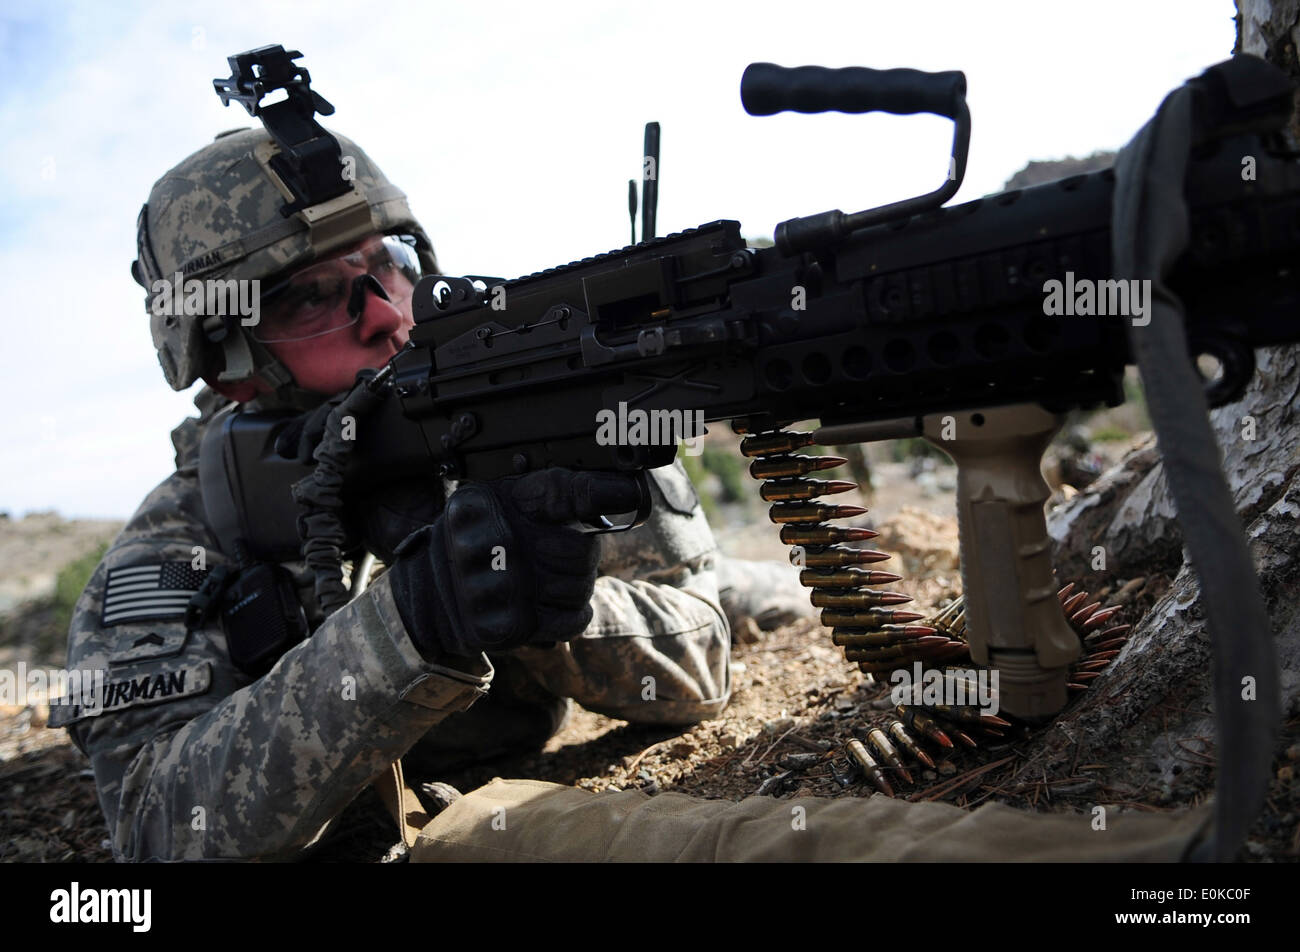 U.S. Army Sgt. Joshua Thurman of Alpha Troop, 1st Squadron, 33rd Cavalry Regiment, 3rd Brigade, 101st Airborne Divison, provide - Stock Image